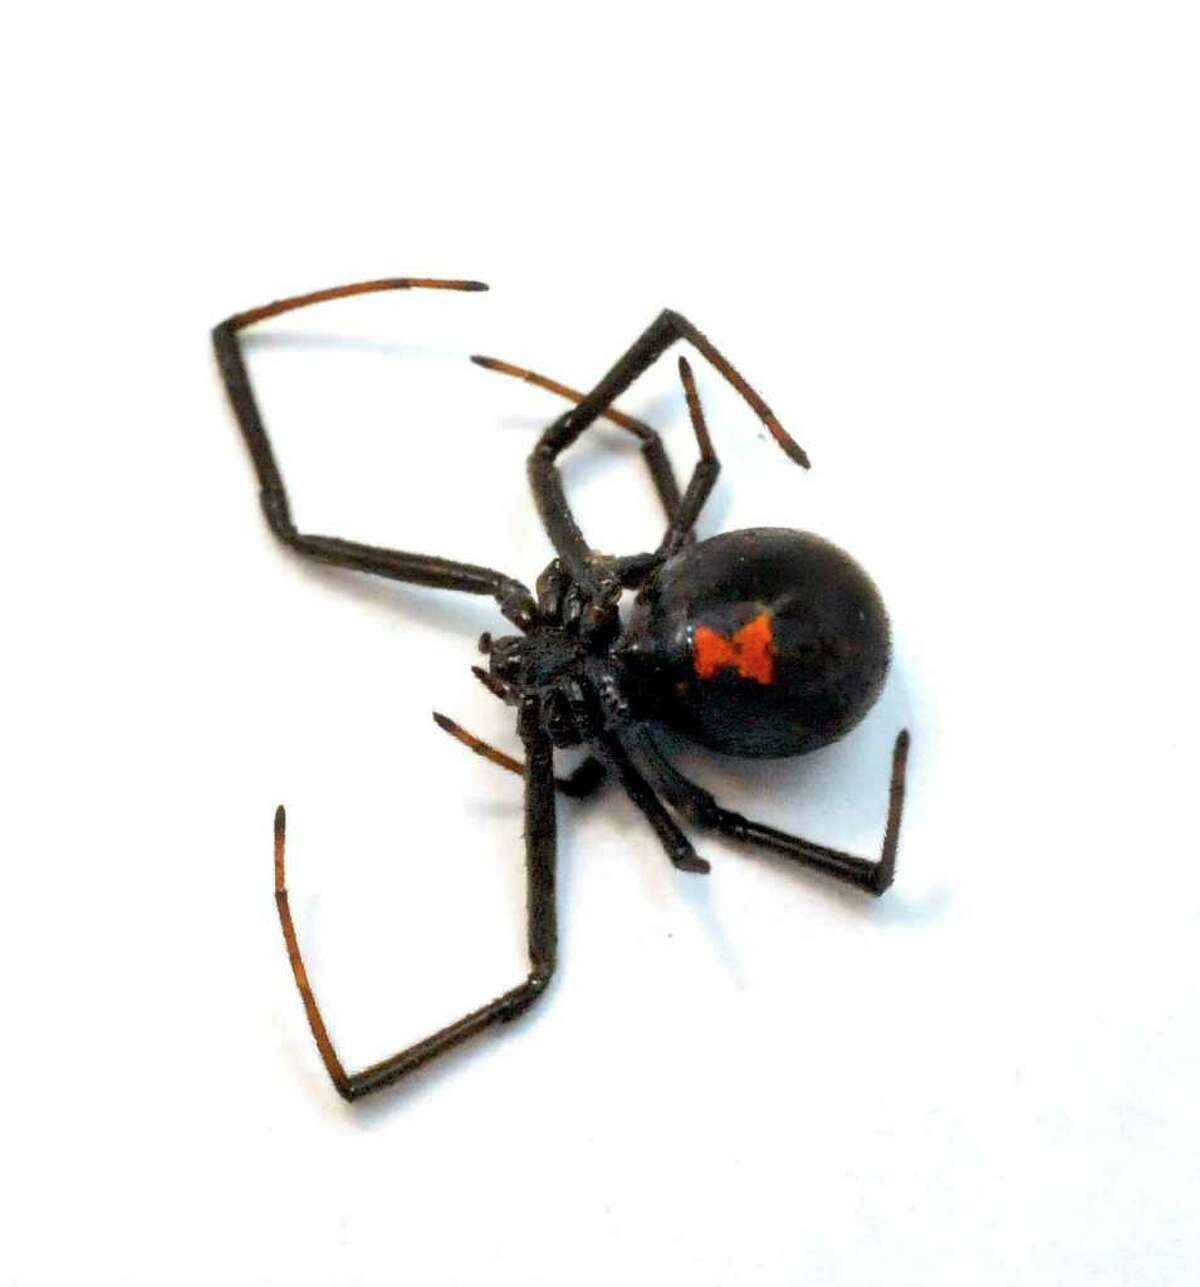 This spider was found in a bag of grapes Thursday morning, Dec. 8, 2011, at the Danbury home of Dina and Stephen Canarozzi.